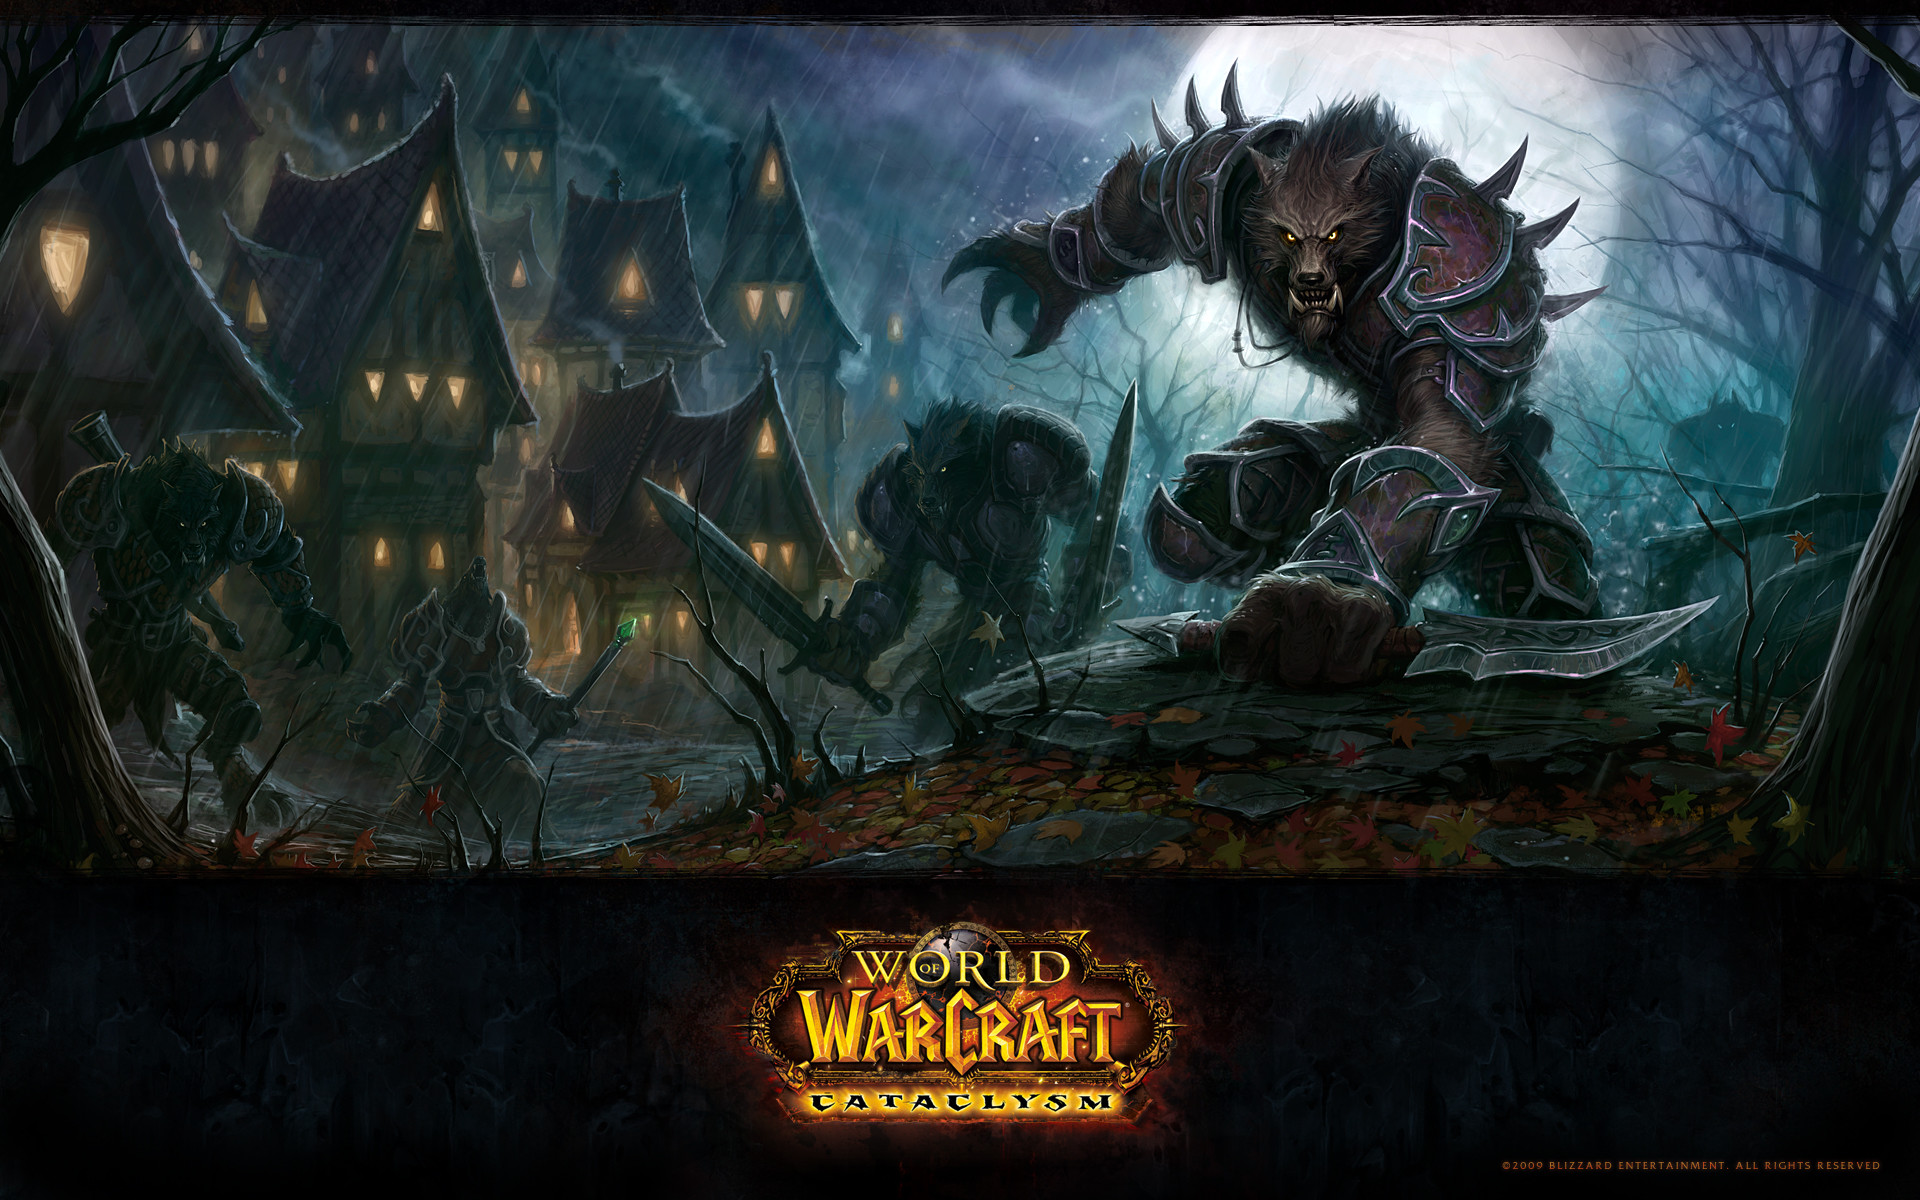 World of Warcraft Cataclysm Game Wallpapers   HD Wallpapers